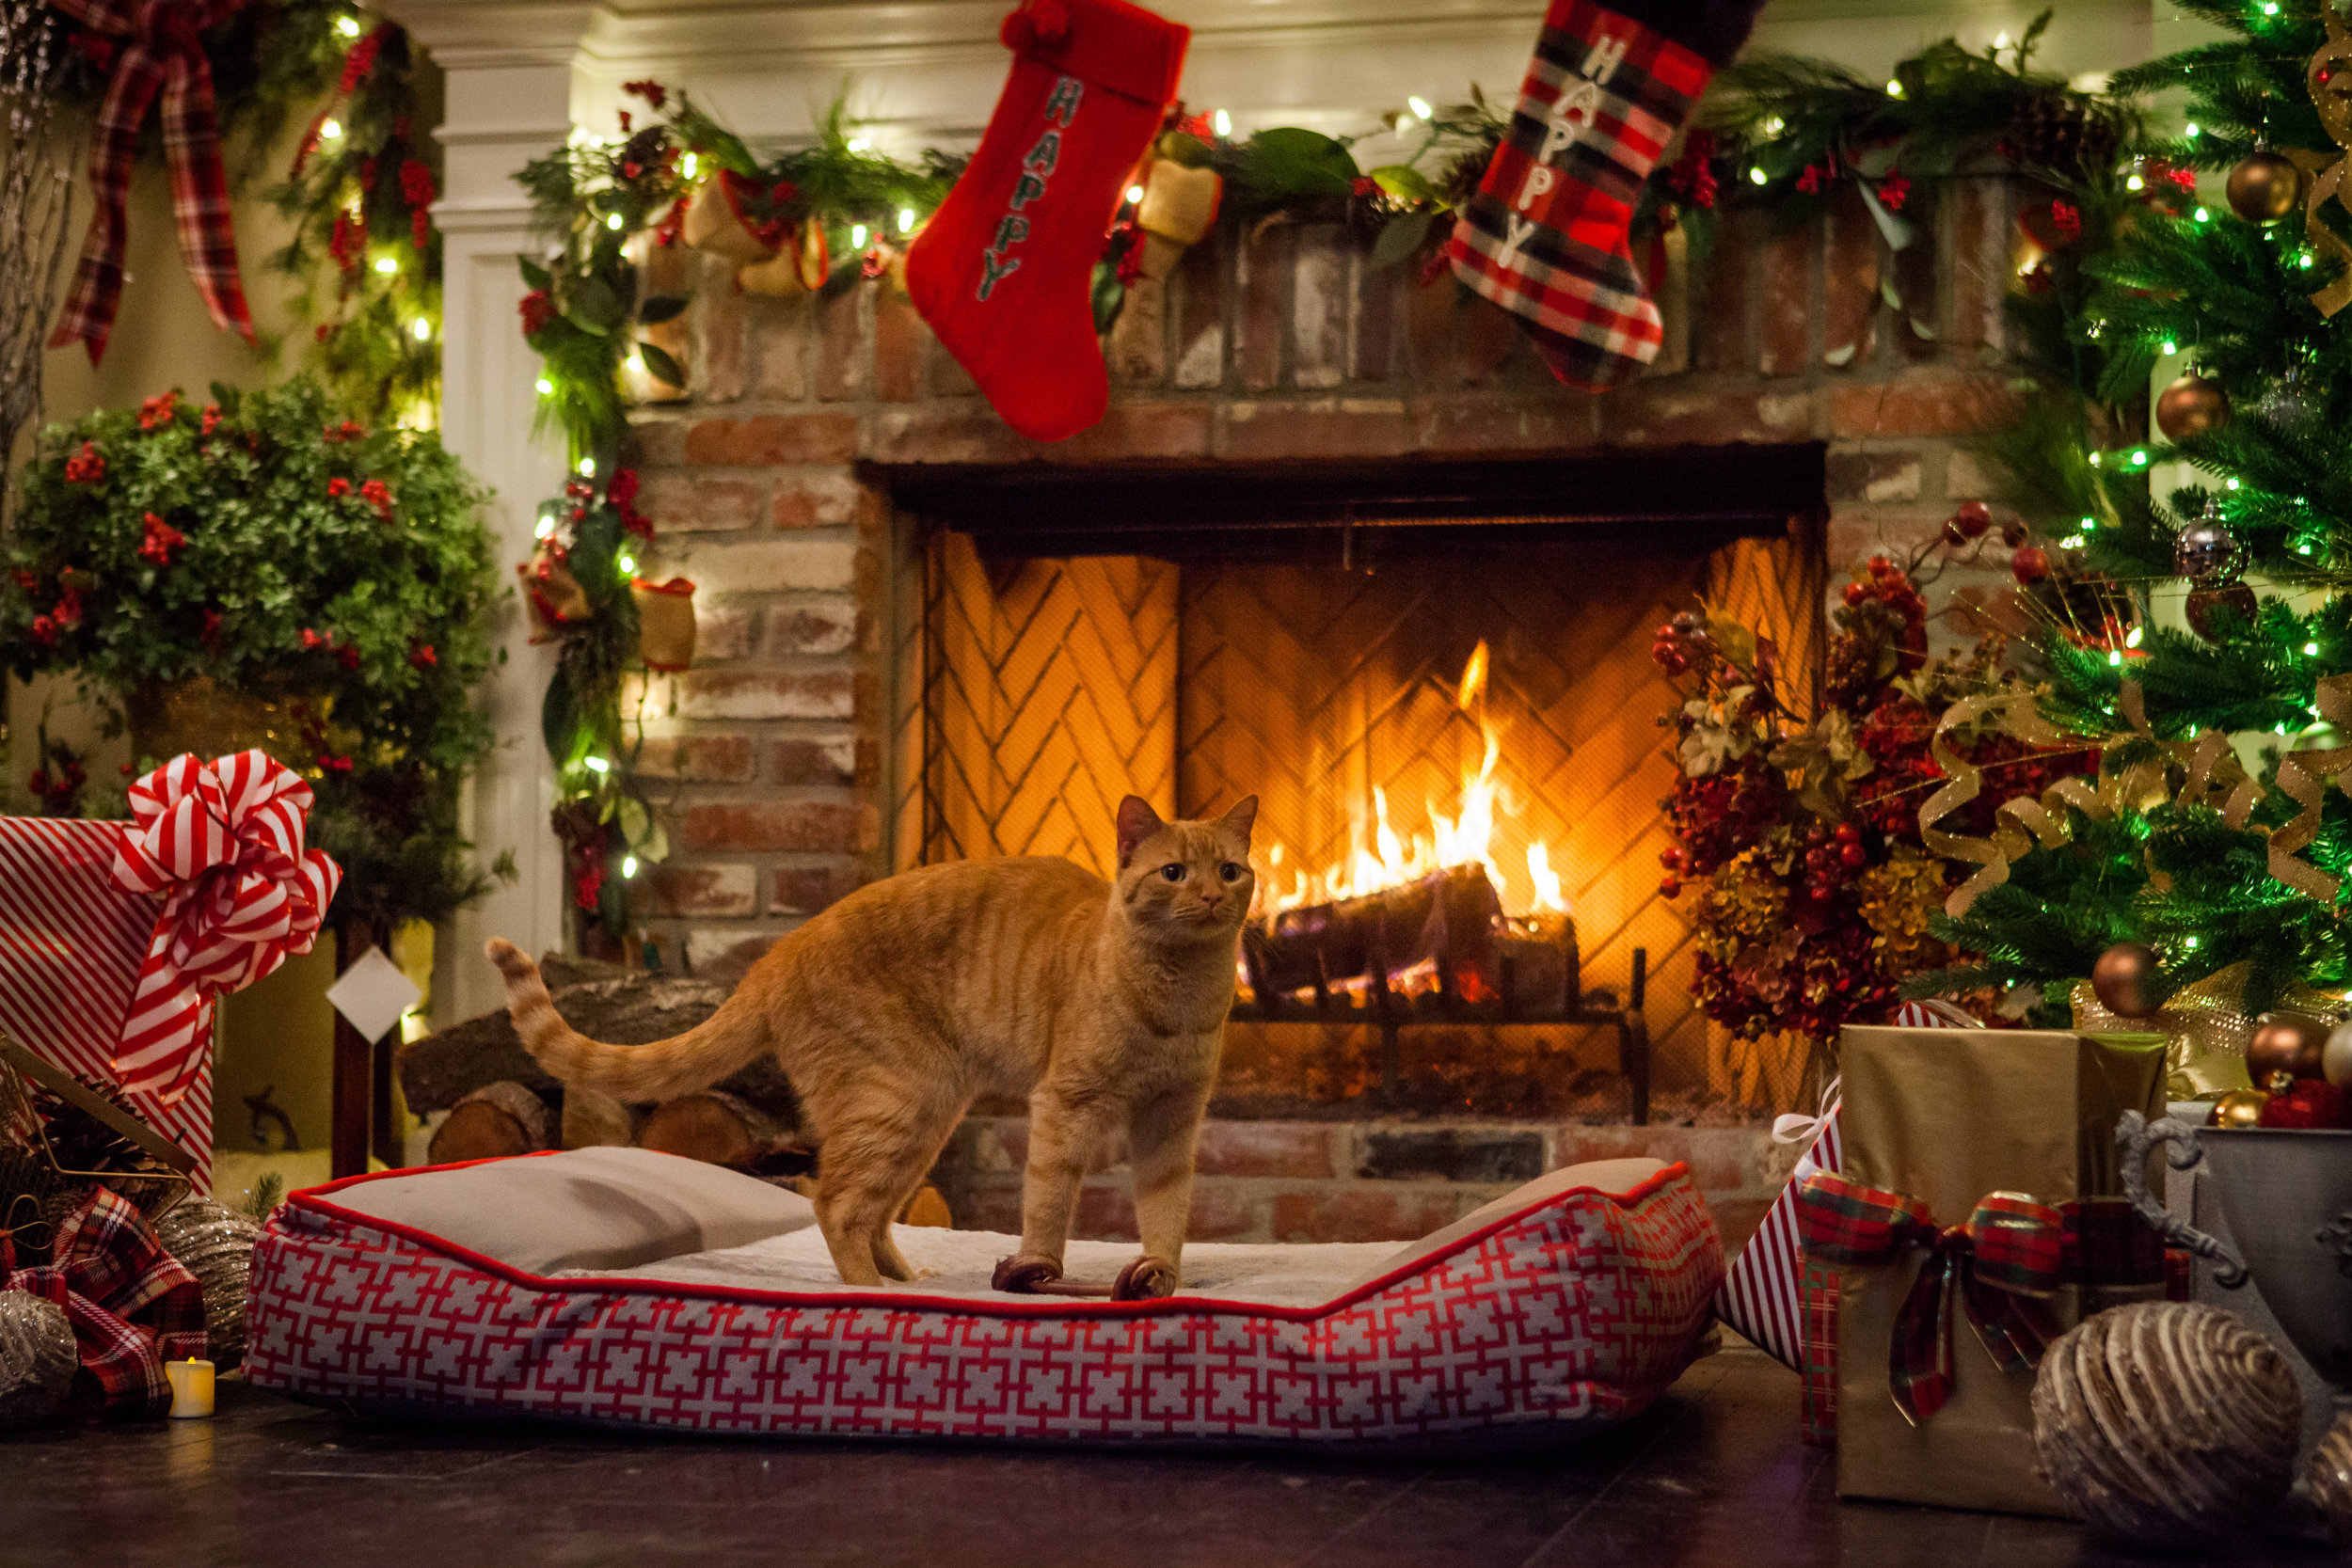 photos a very happy yule log 8 hallmark movies and mysteries